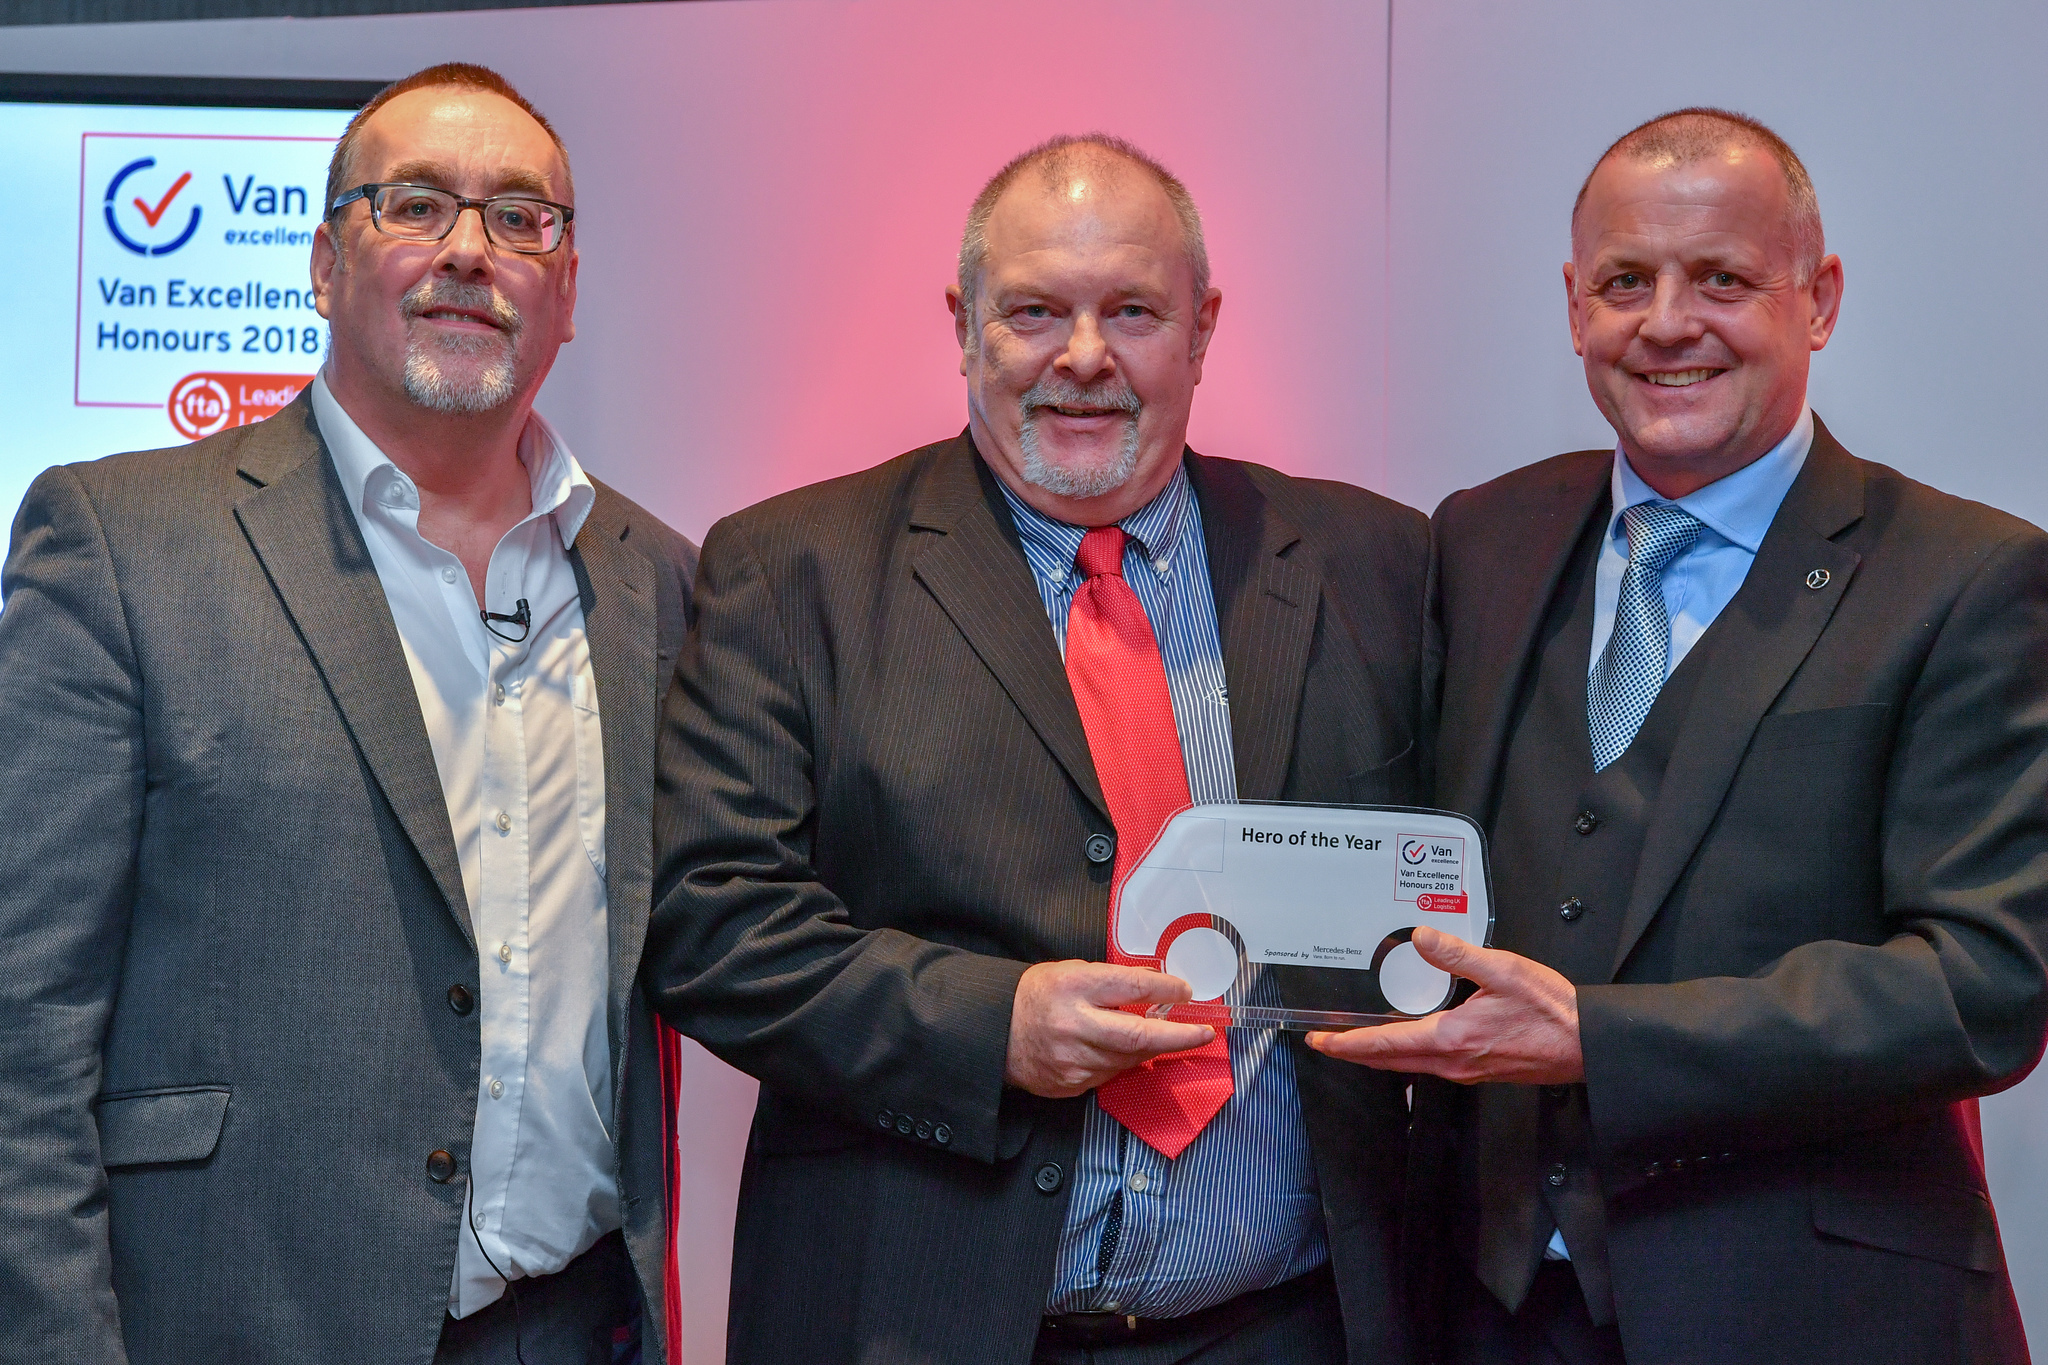 Award winner John Barter with Mark Cartwright, FTA's Head of Vans and Light Commercial Vehicles (left) and Andy Eccles, Head of Fleet at Mercedes-Benz Vans (right).